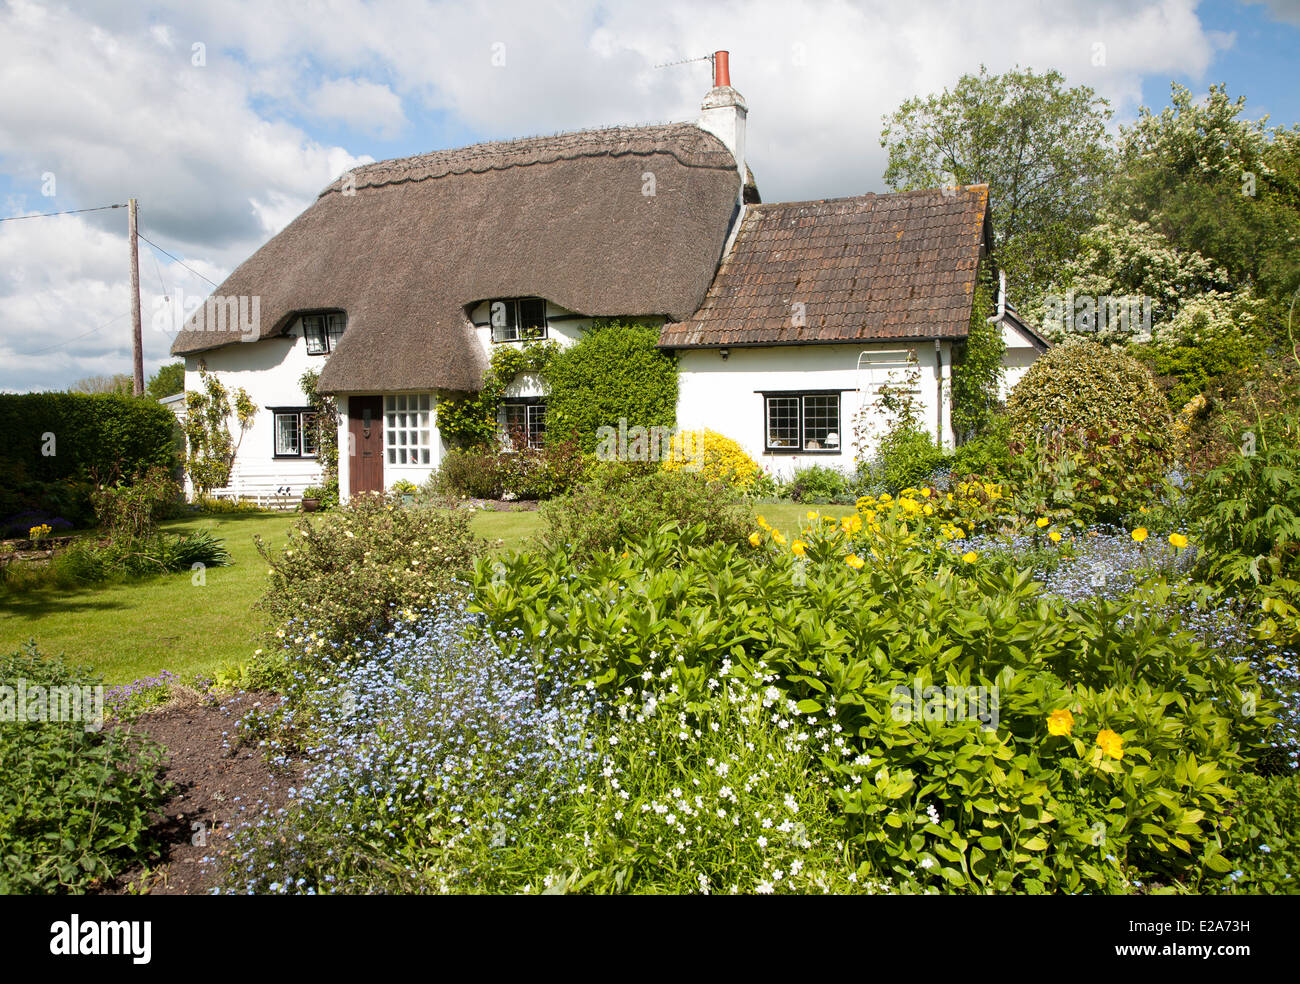 Pretty detached country cottage and garden Cherhill, Wiltshire, England - Stock Image